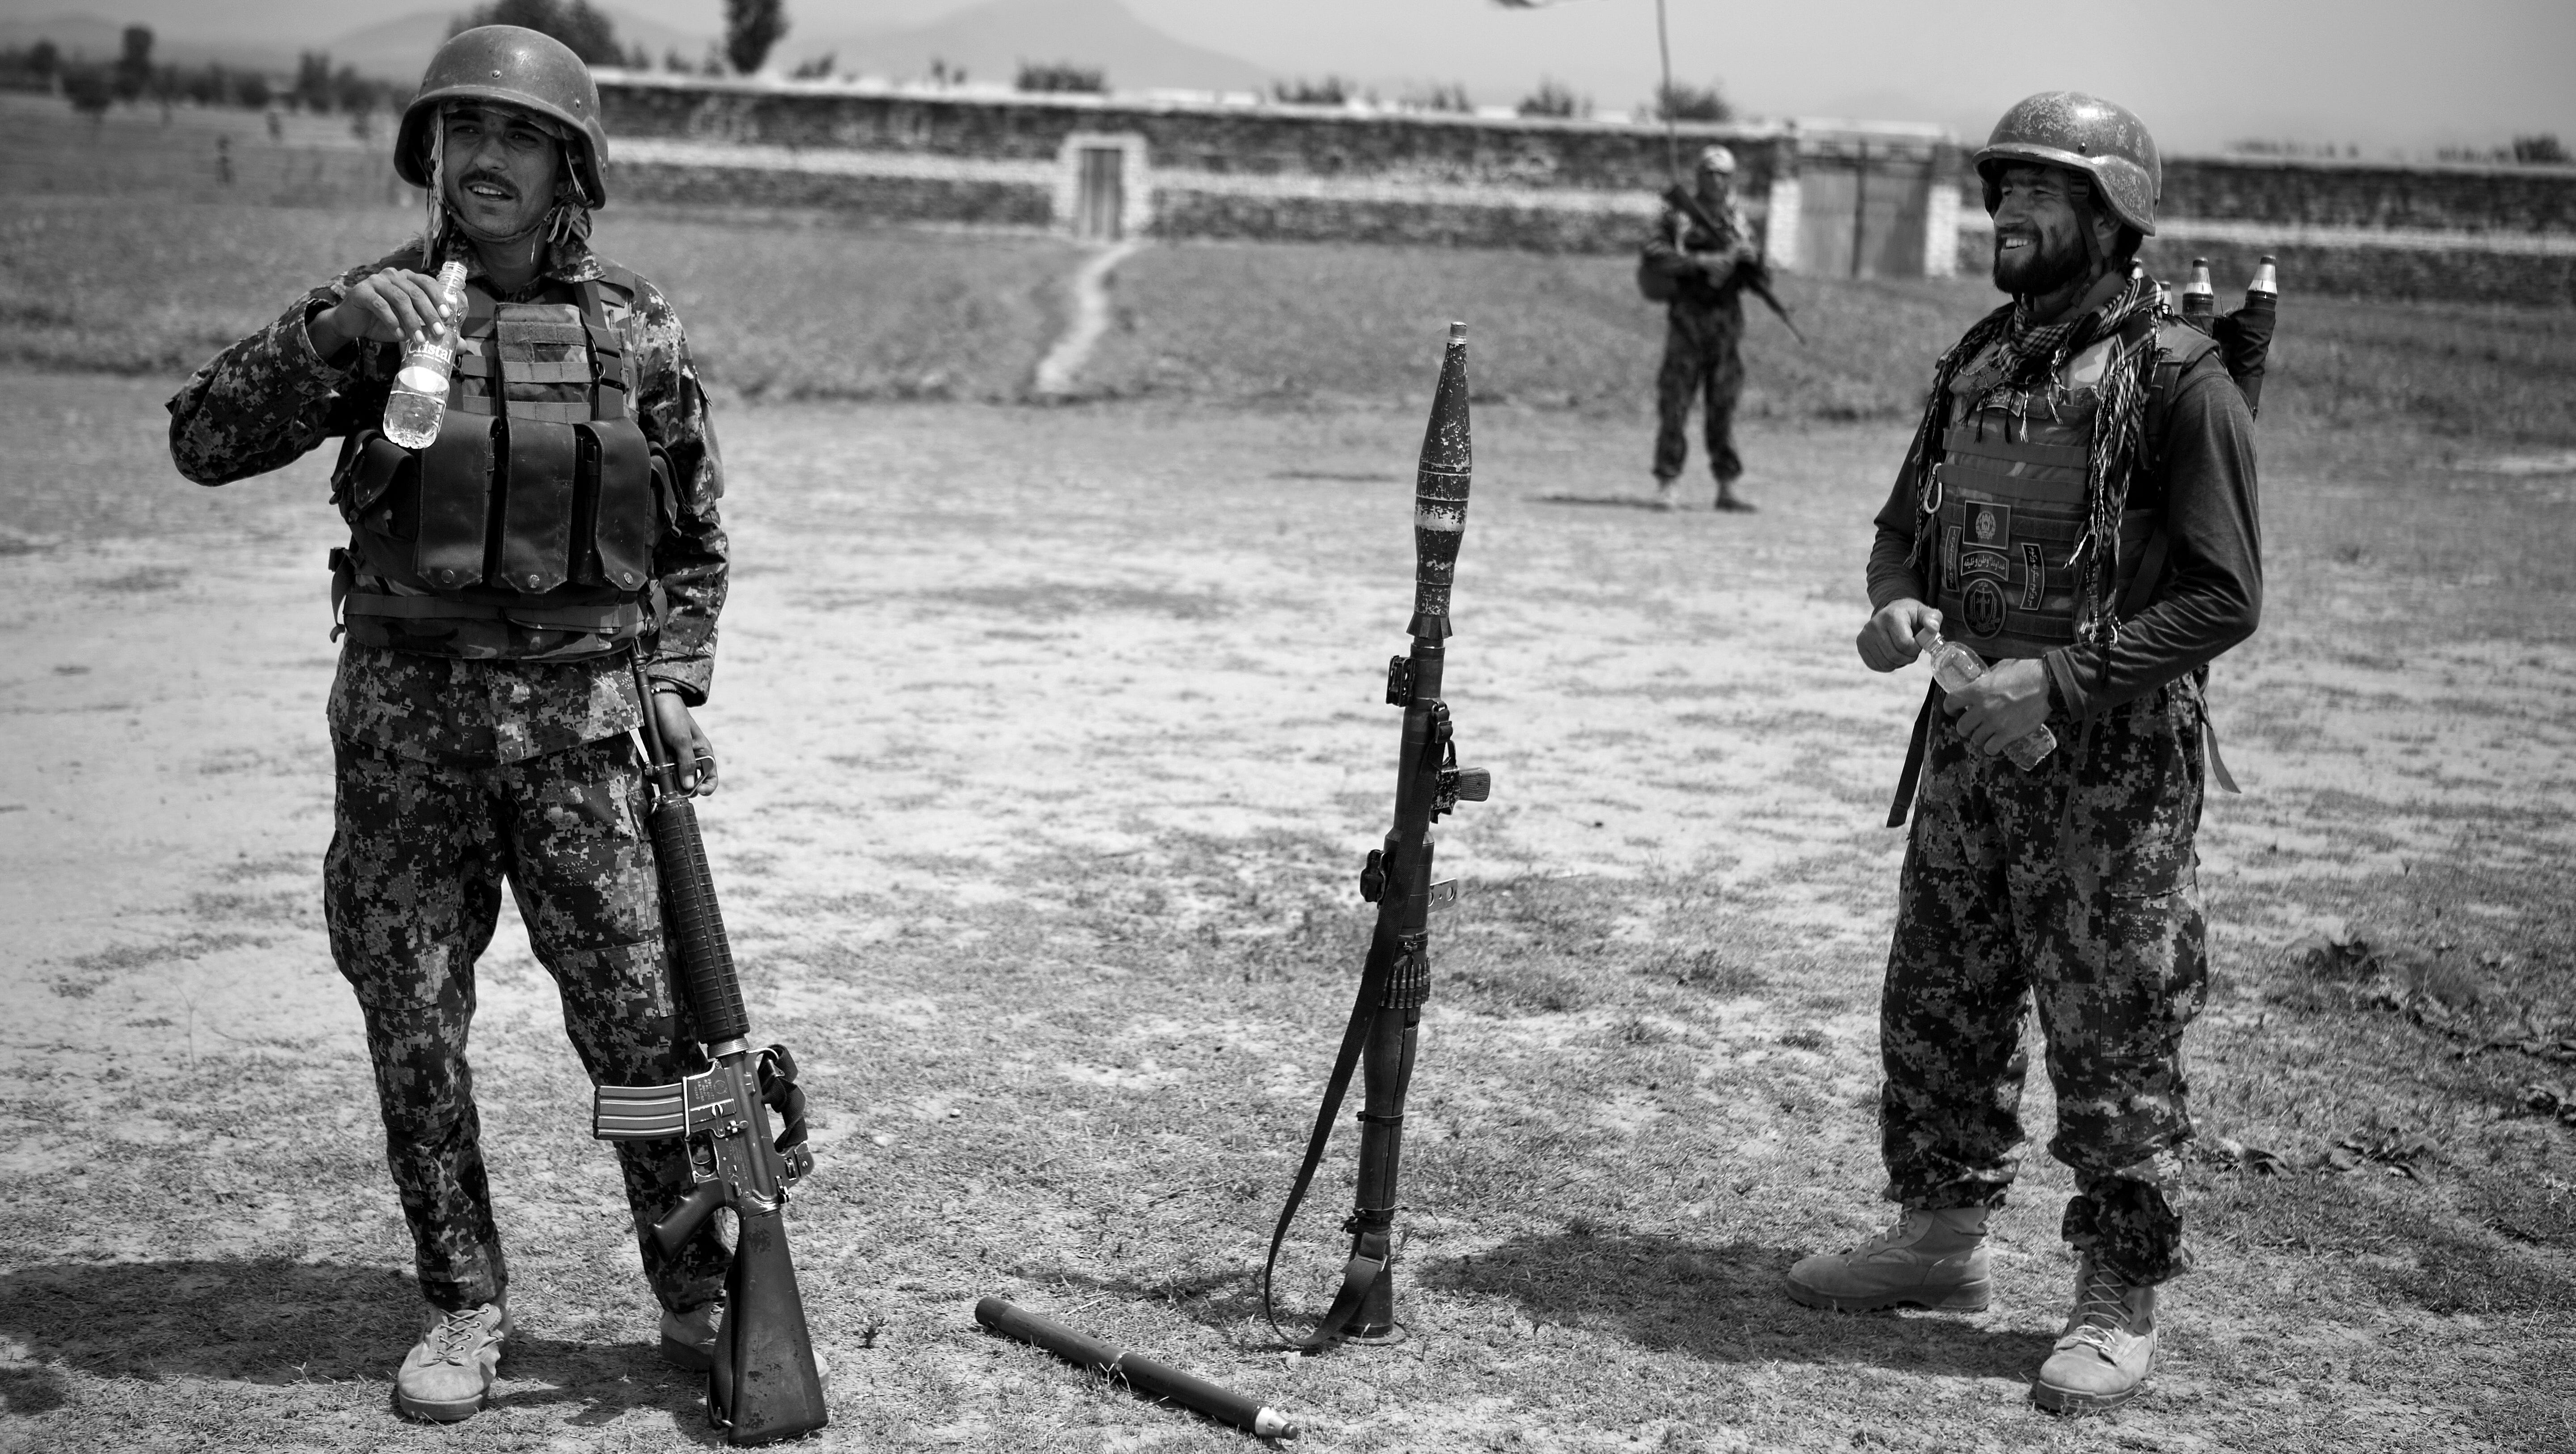 Afghan National Army soldiers pause after a mission in the Sabari district of Khost province.